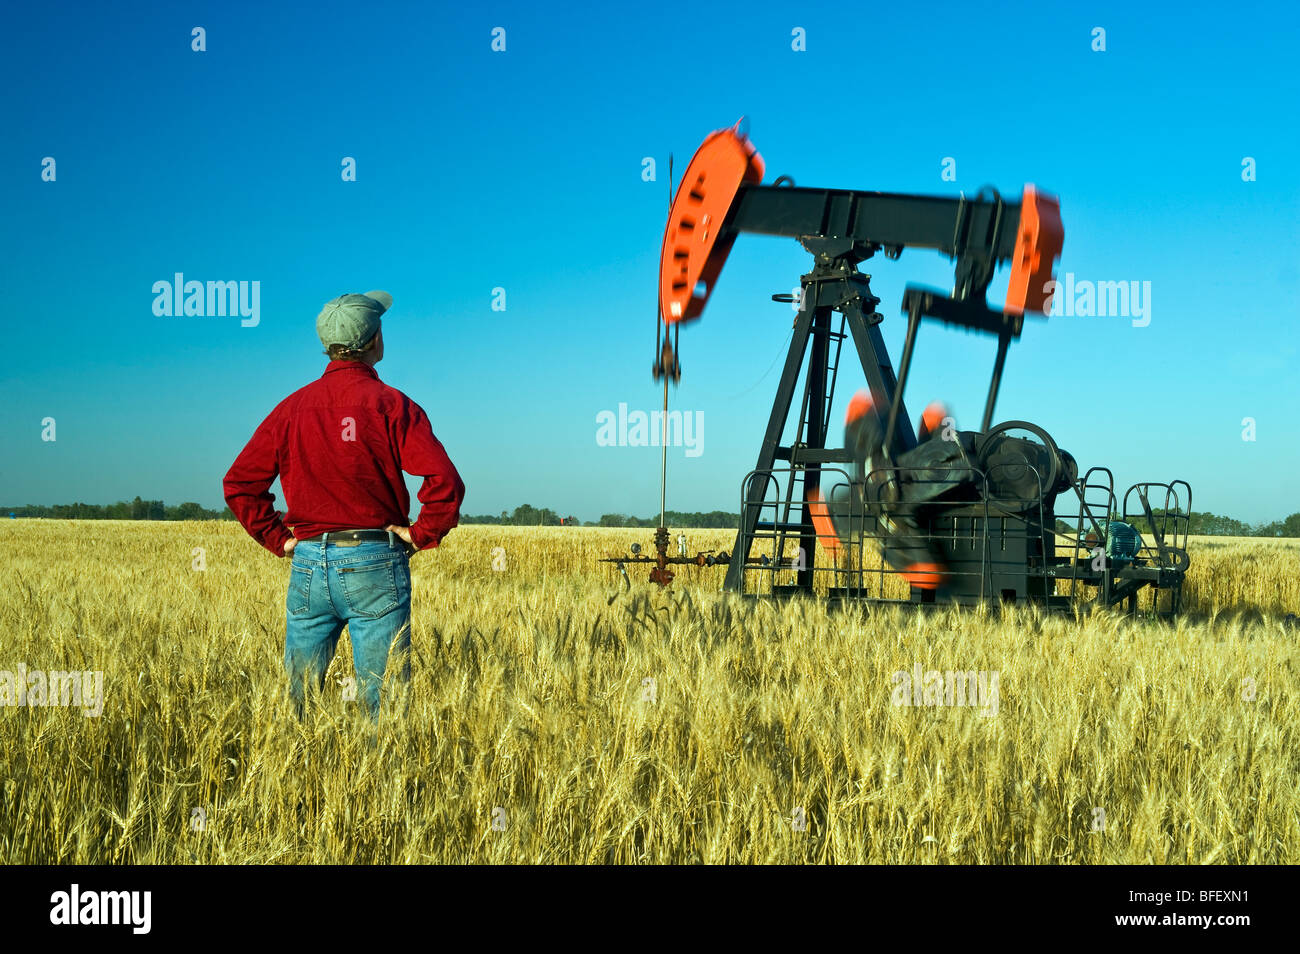 a man looks out over a harvest ready wheat field with an oil pumpjack in the background, near Sinclair, Manitoba, - Stock Image